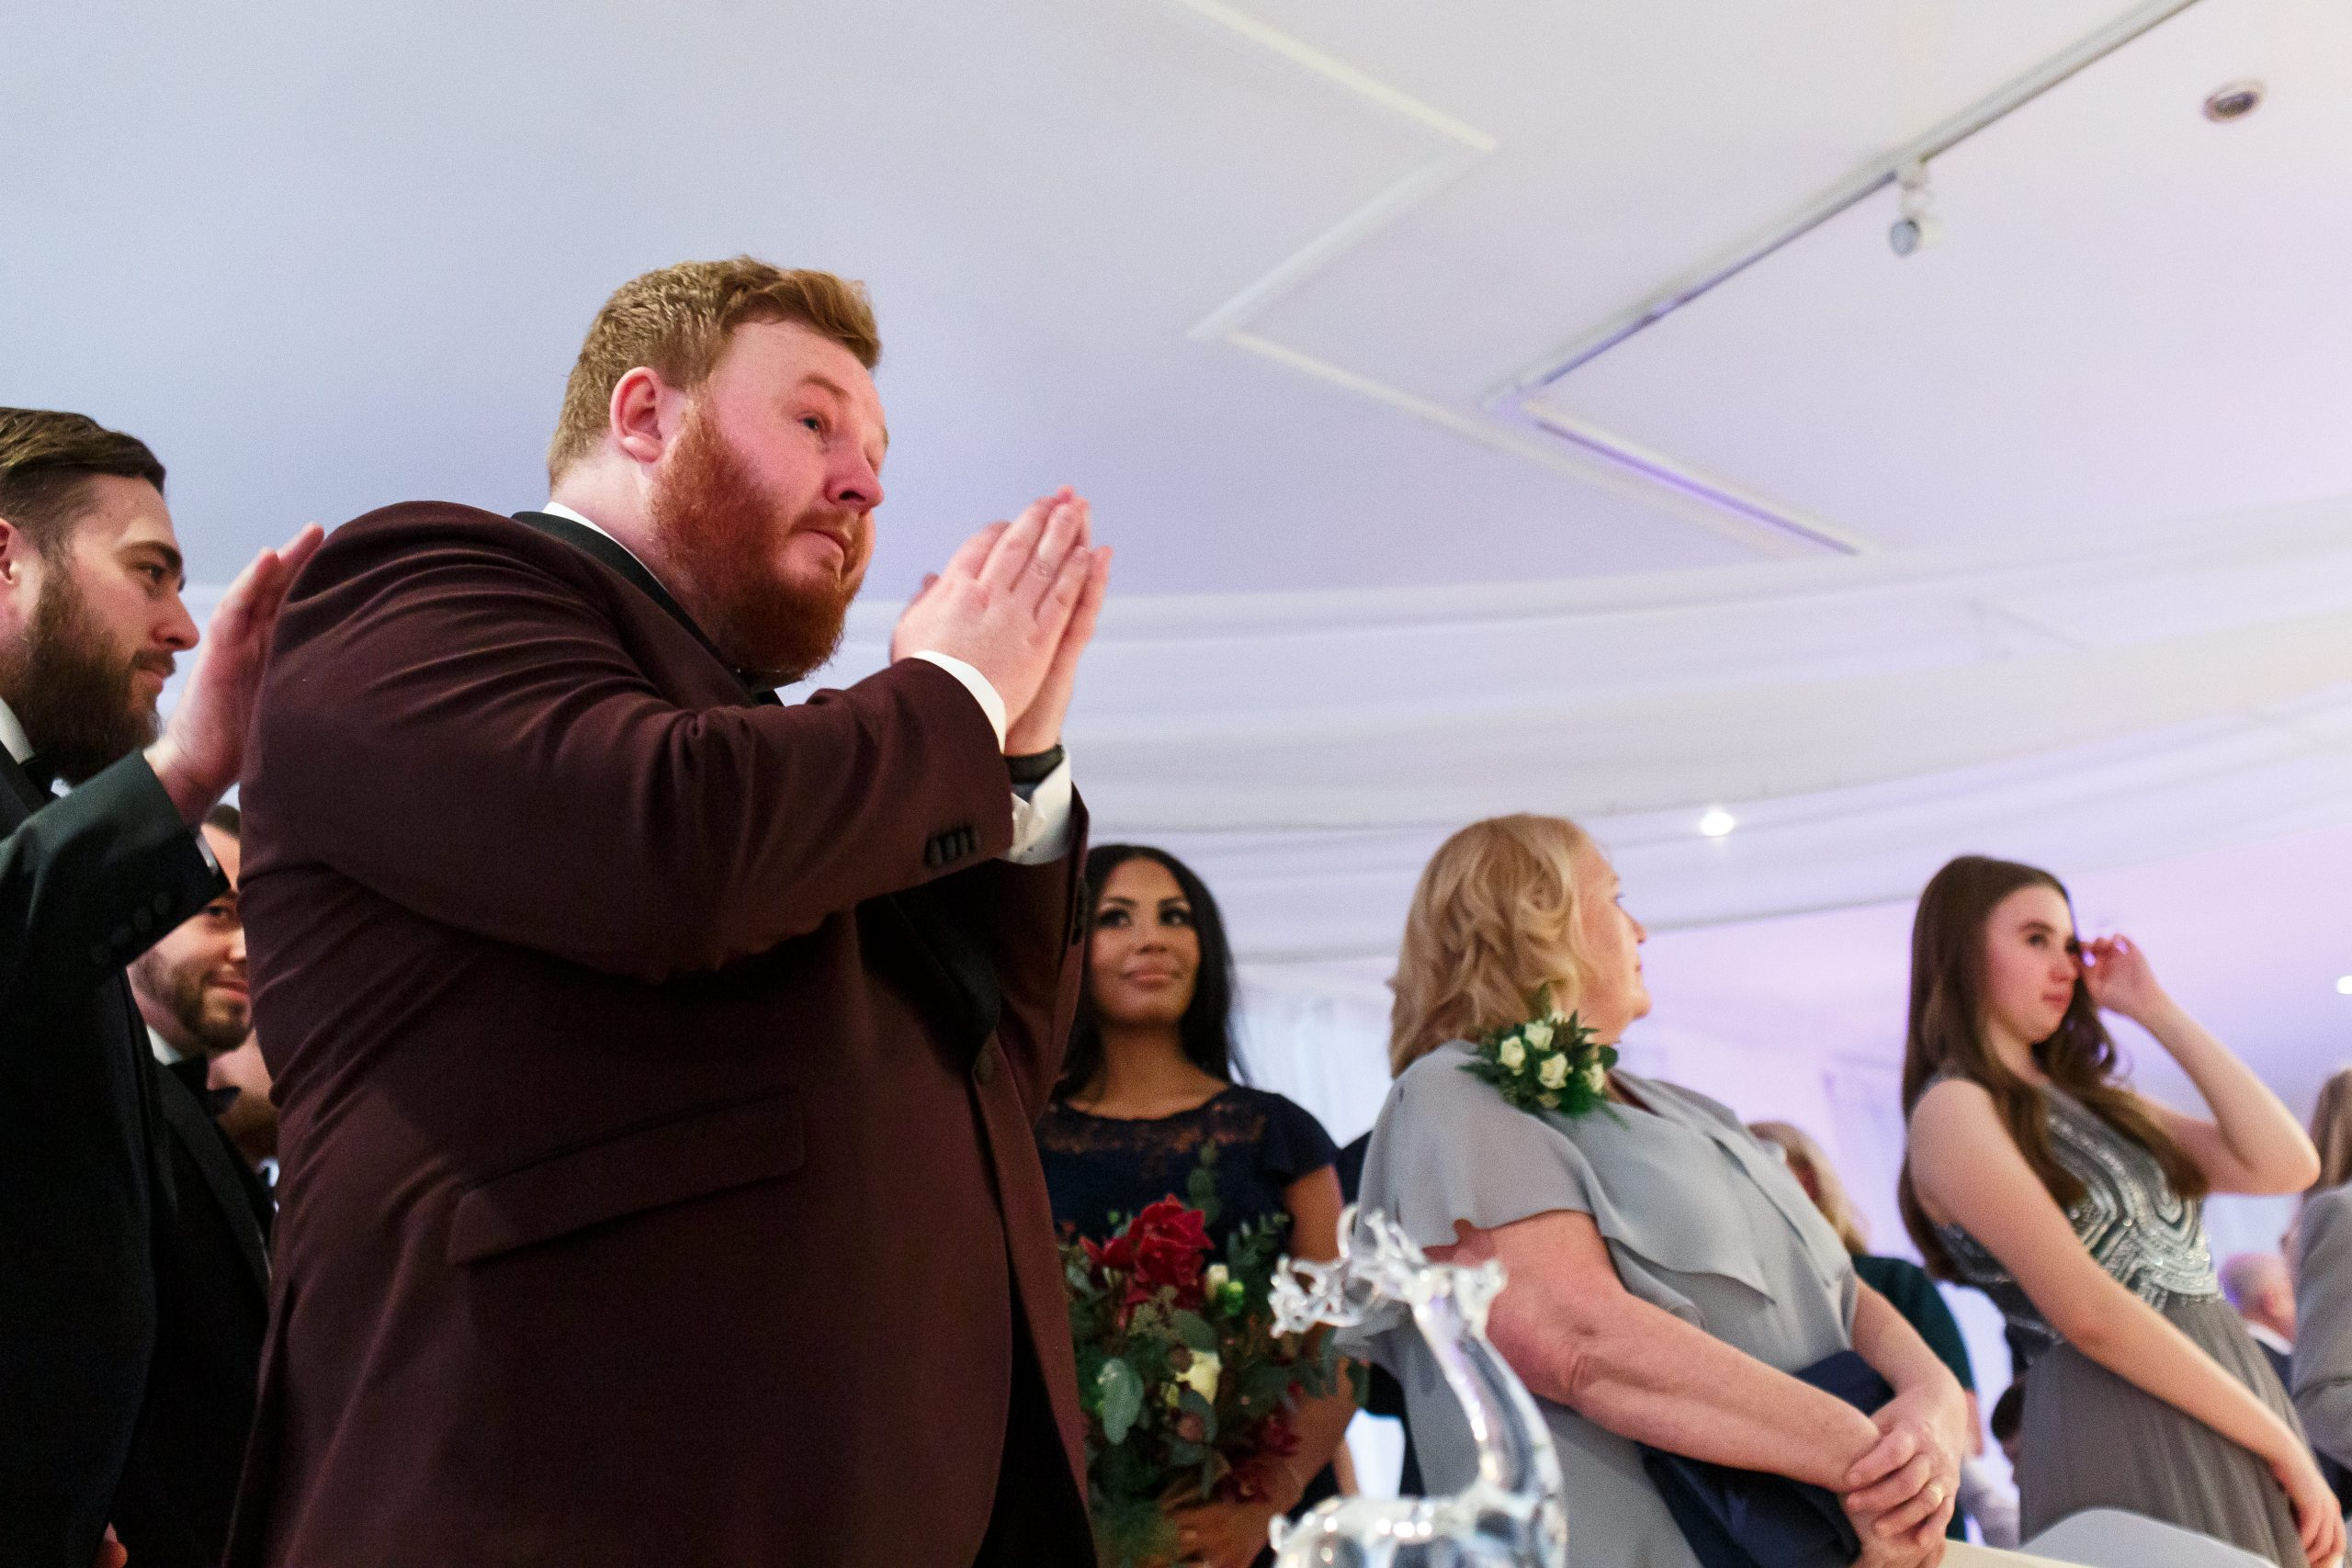 Groom with ginger hair and maroon tuxedo holding his hands to pray as his bride walks down the aisle | Foxfields Country House Wedding Photography